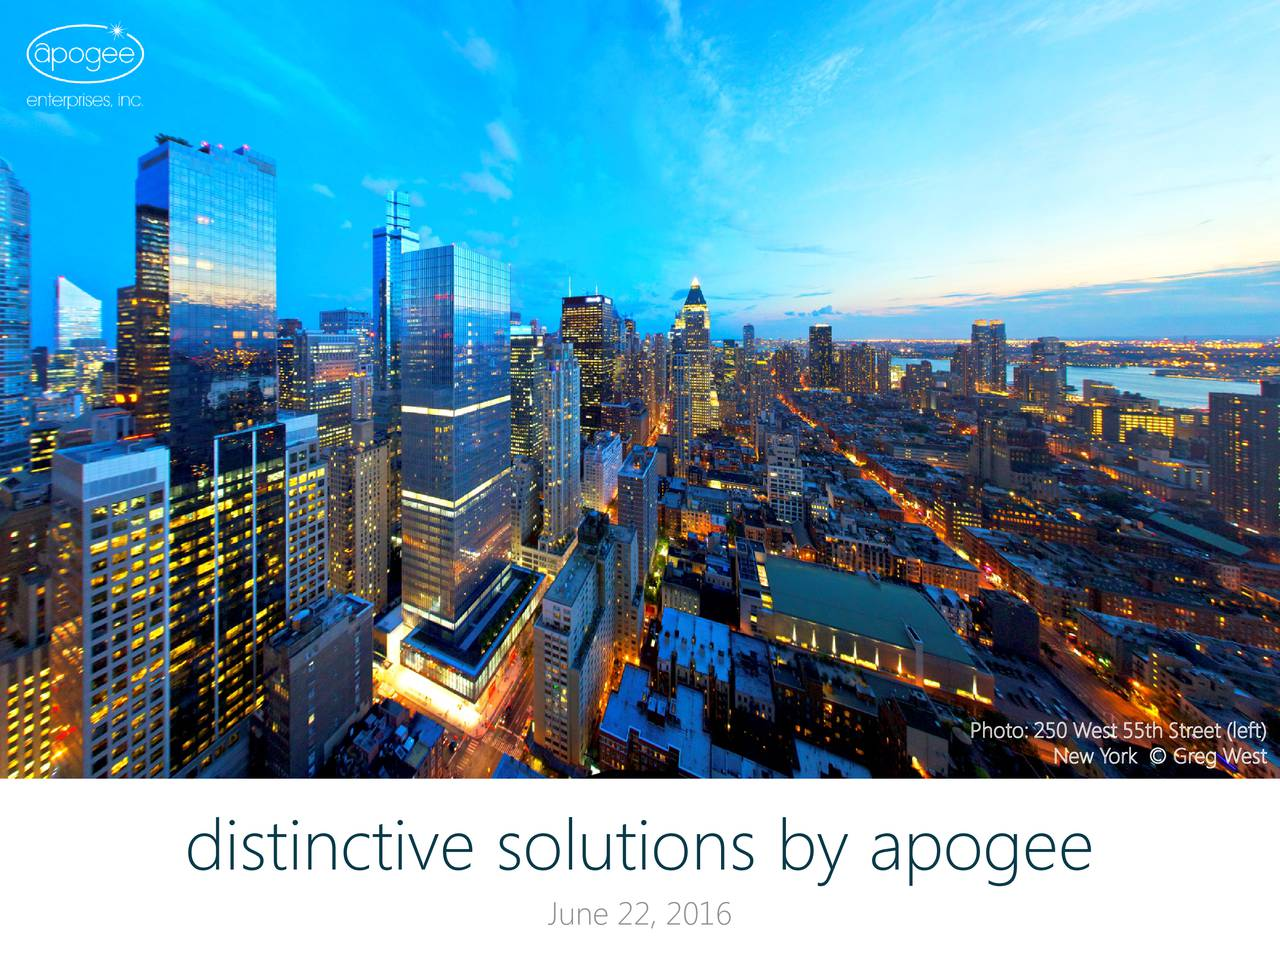 New York  Greg West distinctive solutions by apogee June 22, 2016